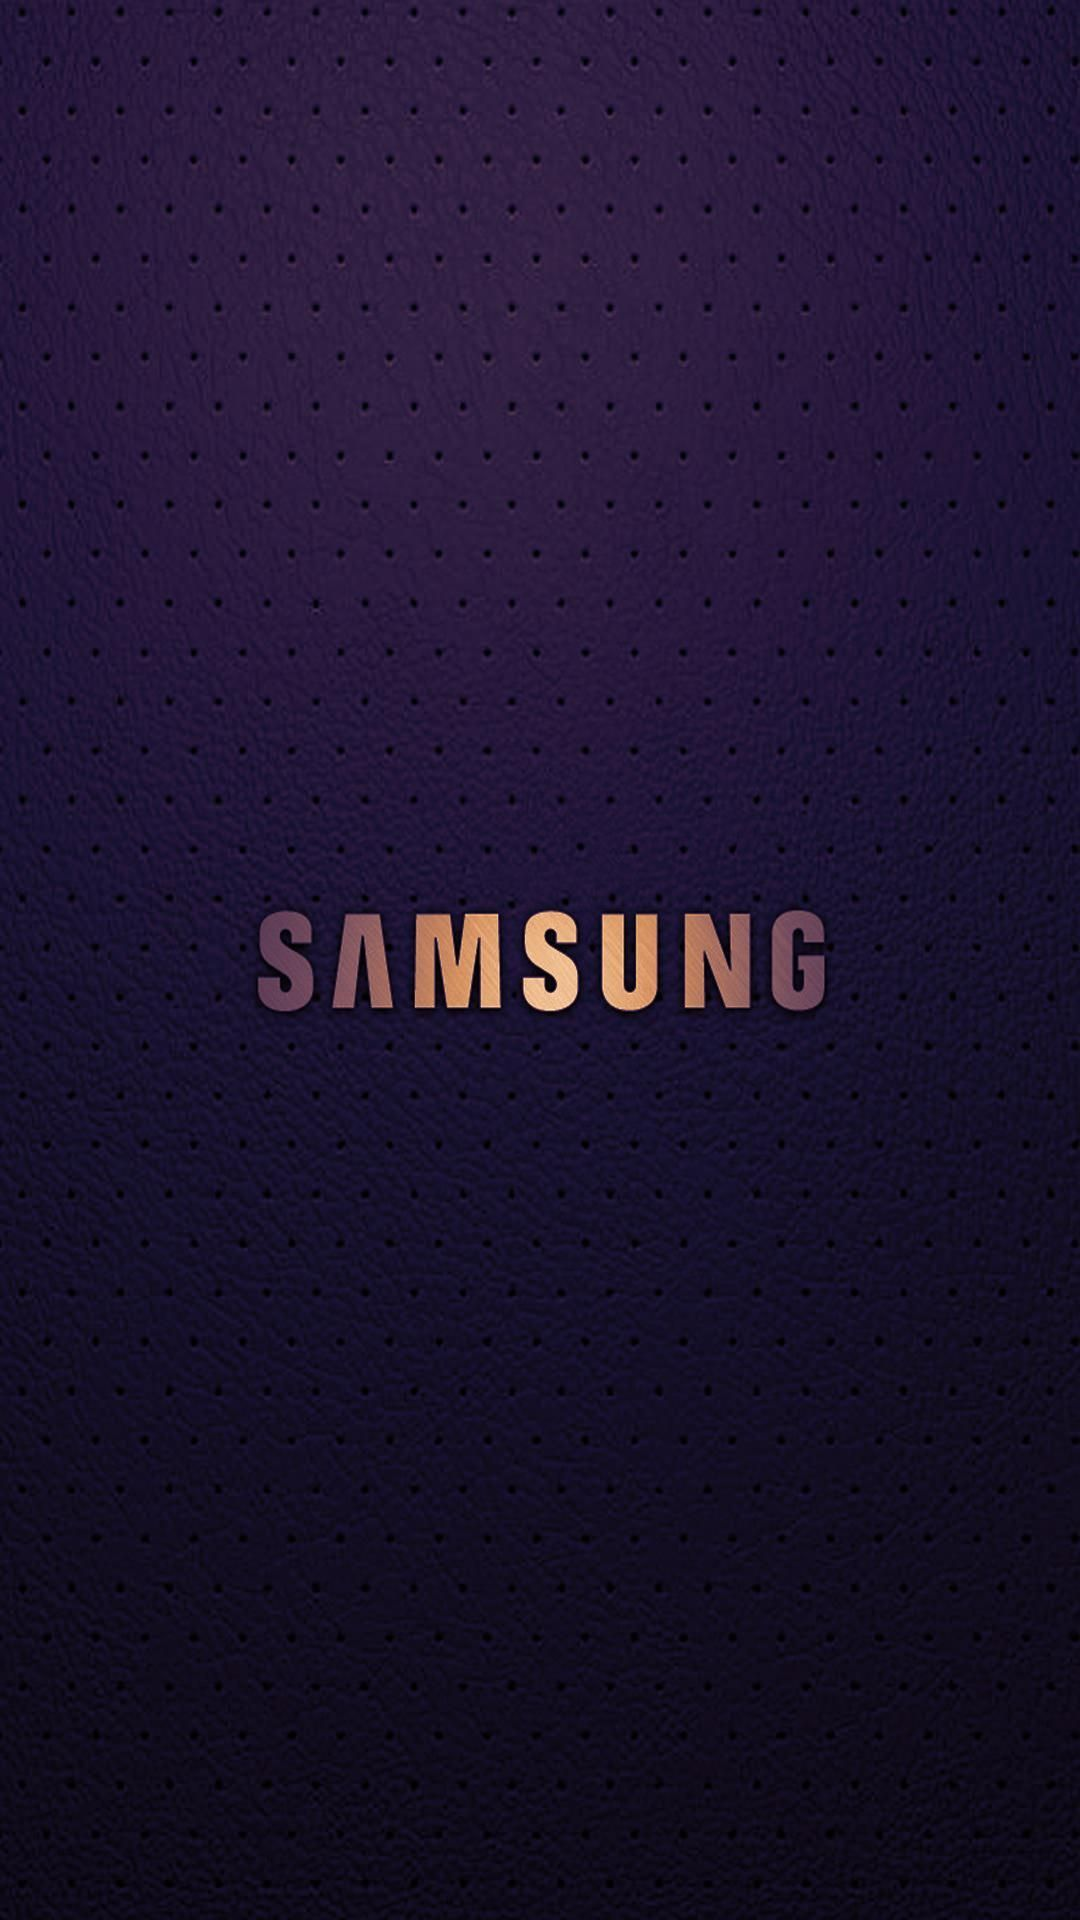 wallpapers for samsungs